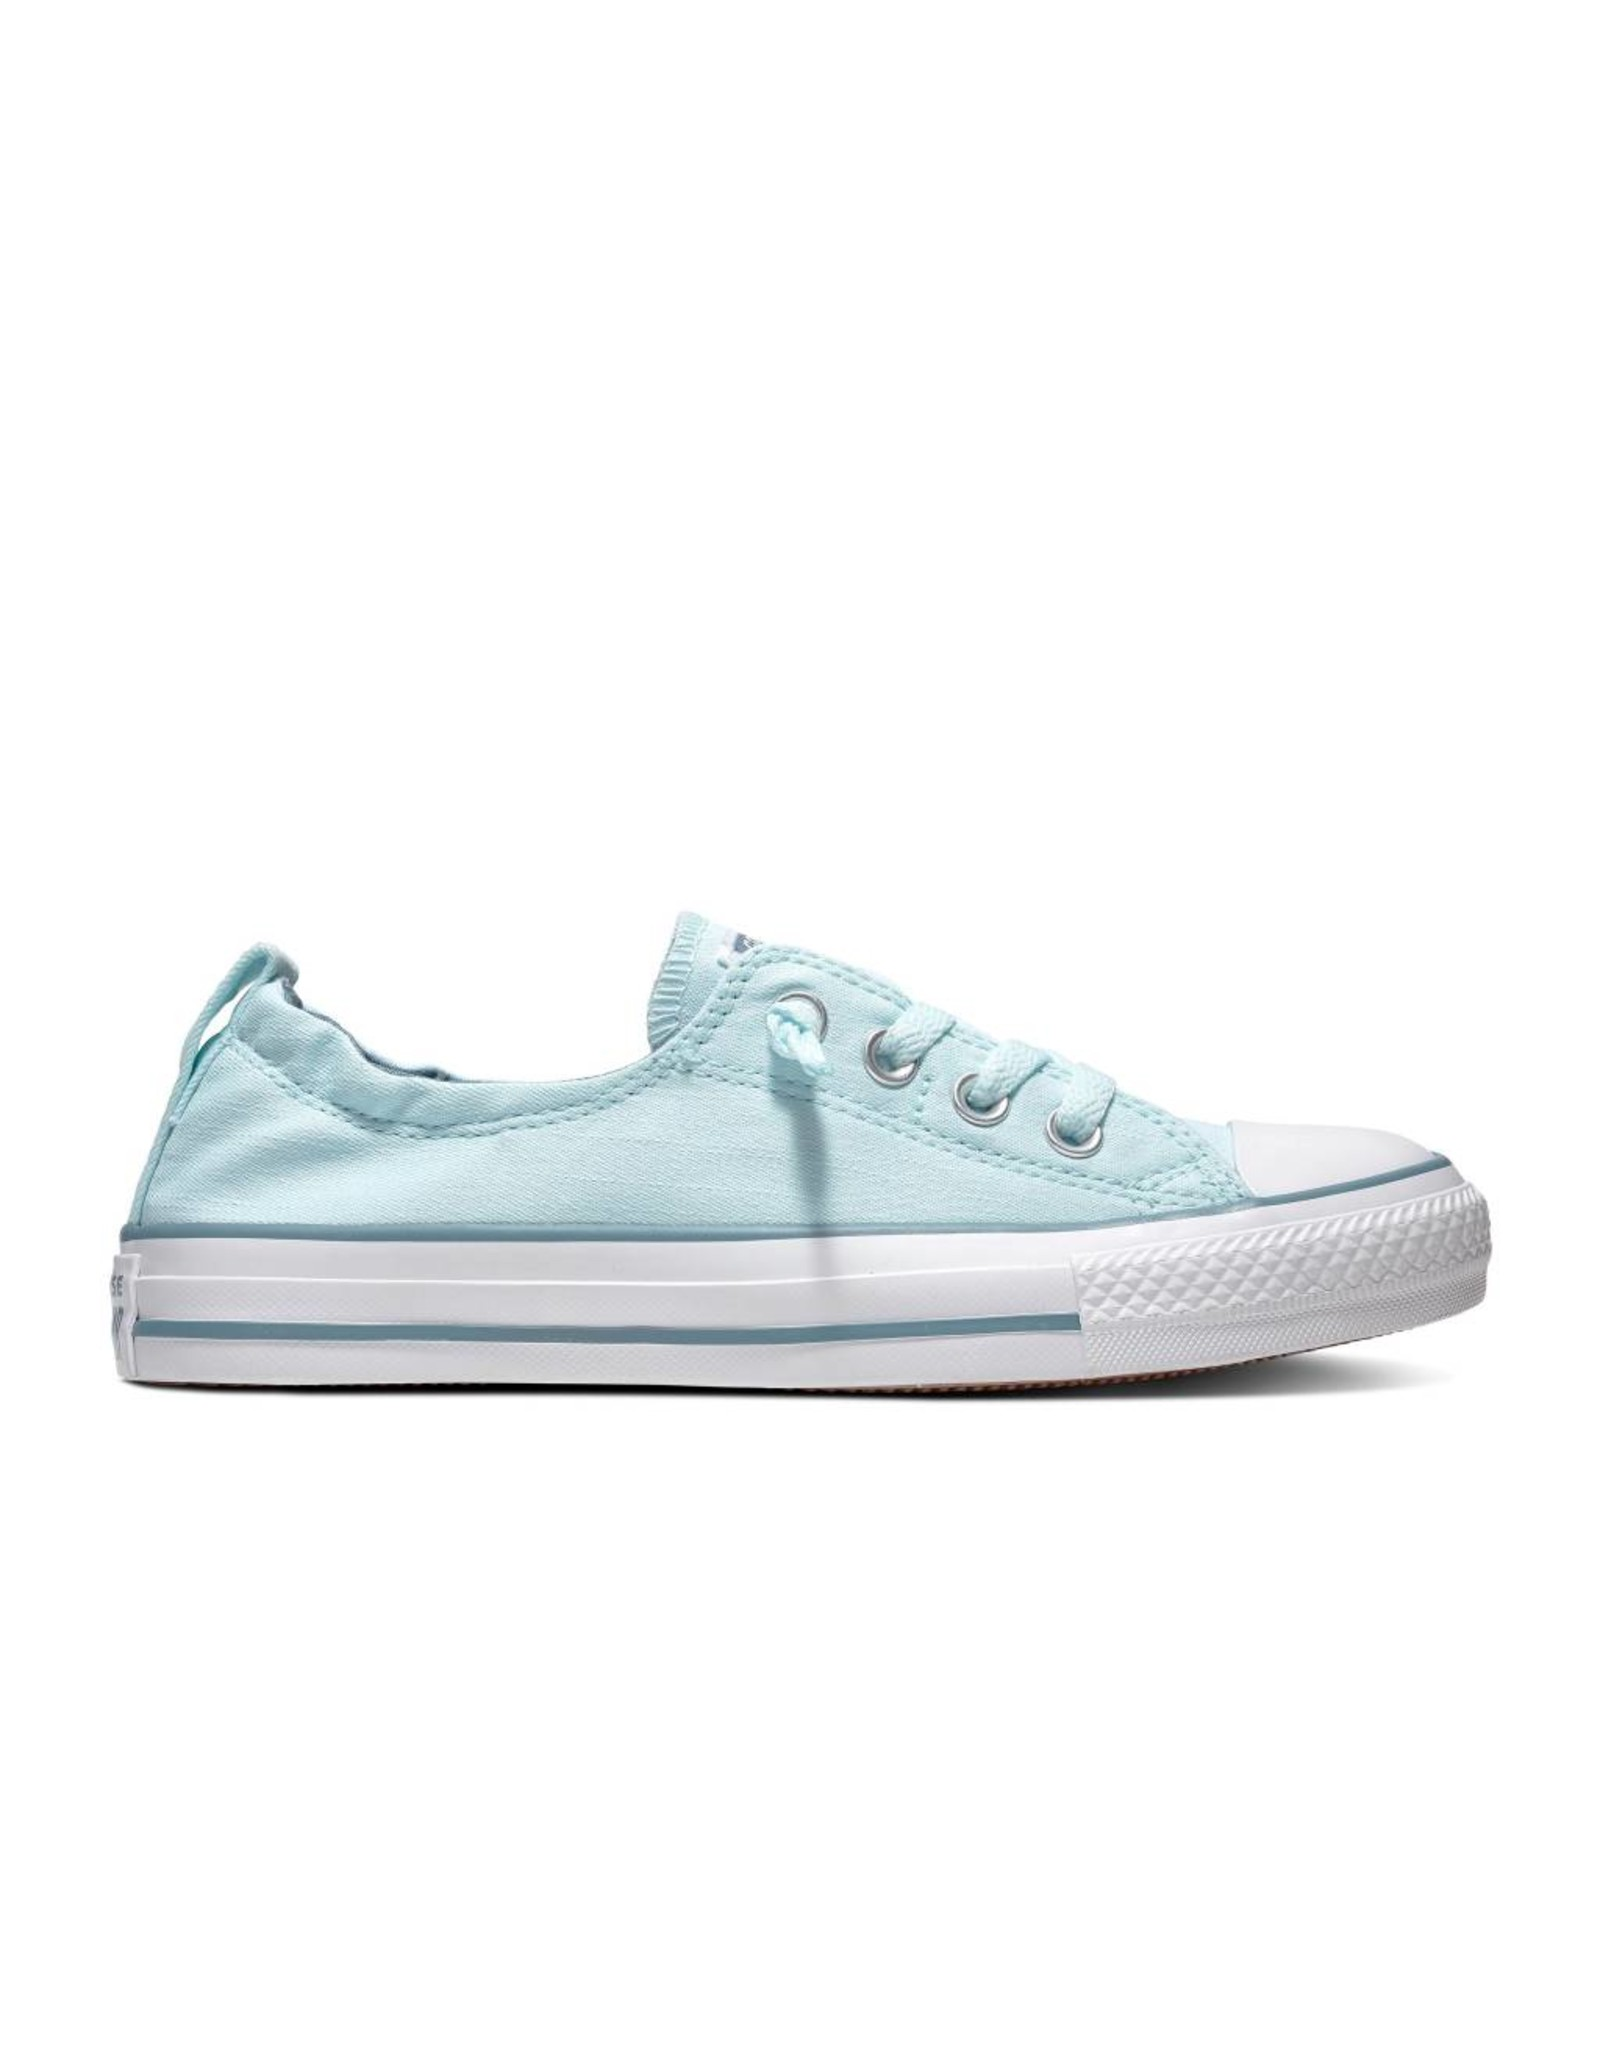 CONVERSE CHUCK TAYLOR ALL STAR SHORELINE SLIP TEAL TINT C13SST-563452C